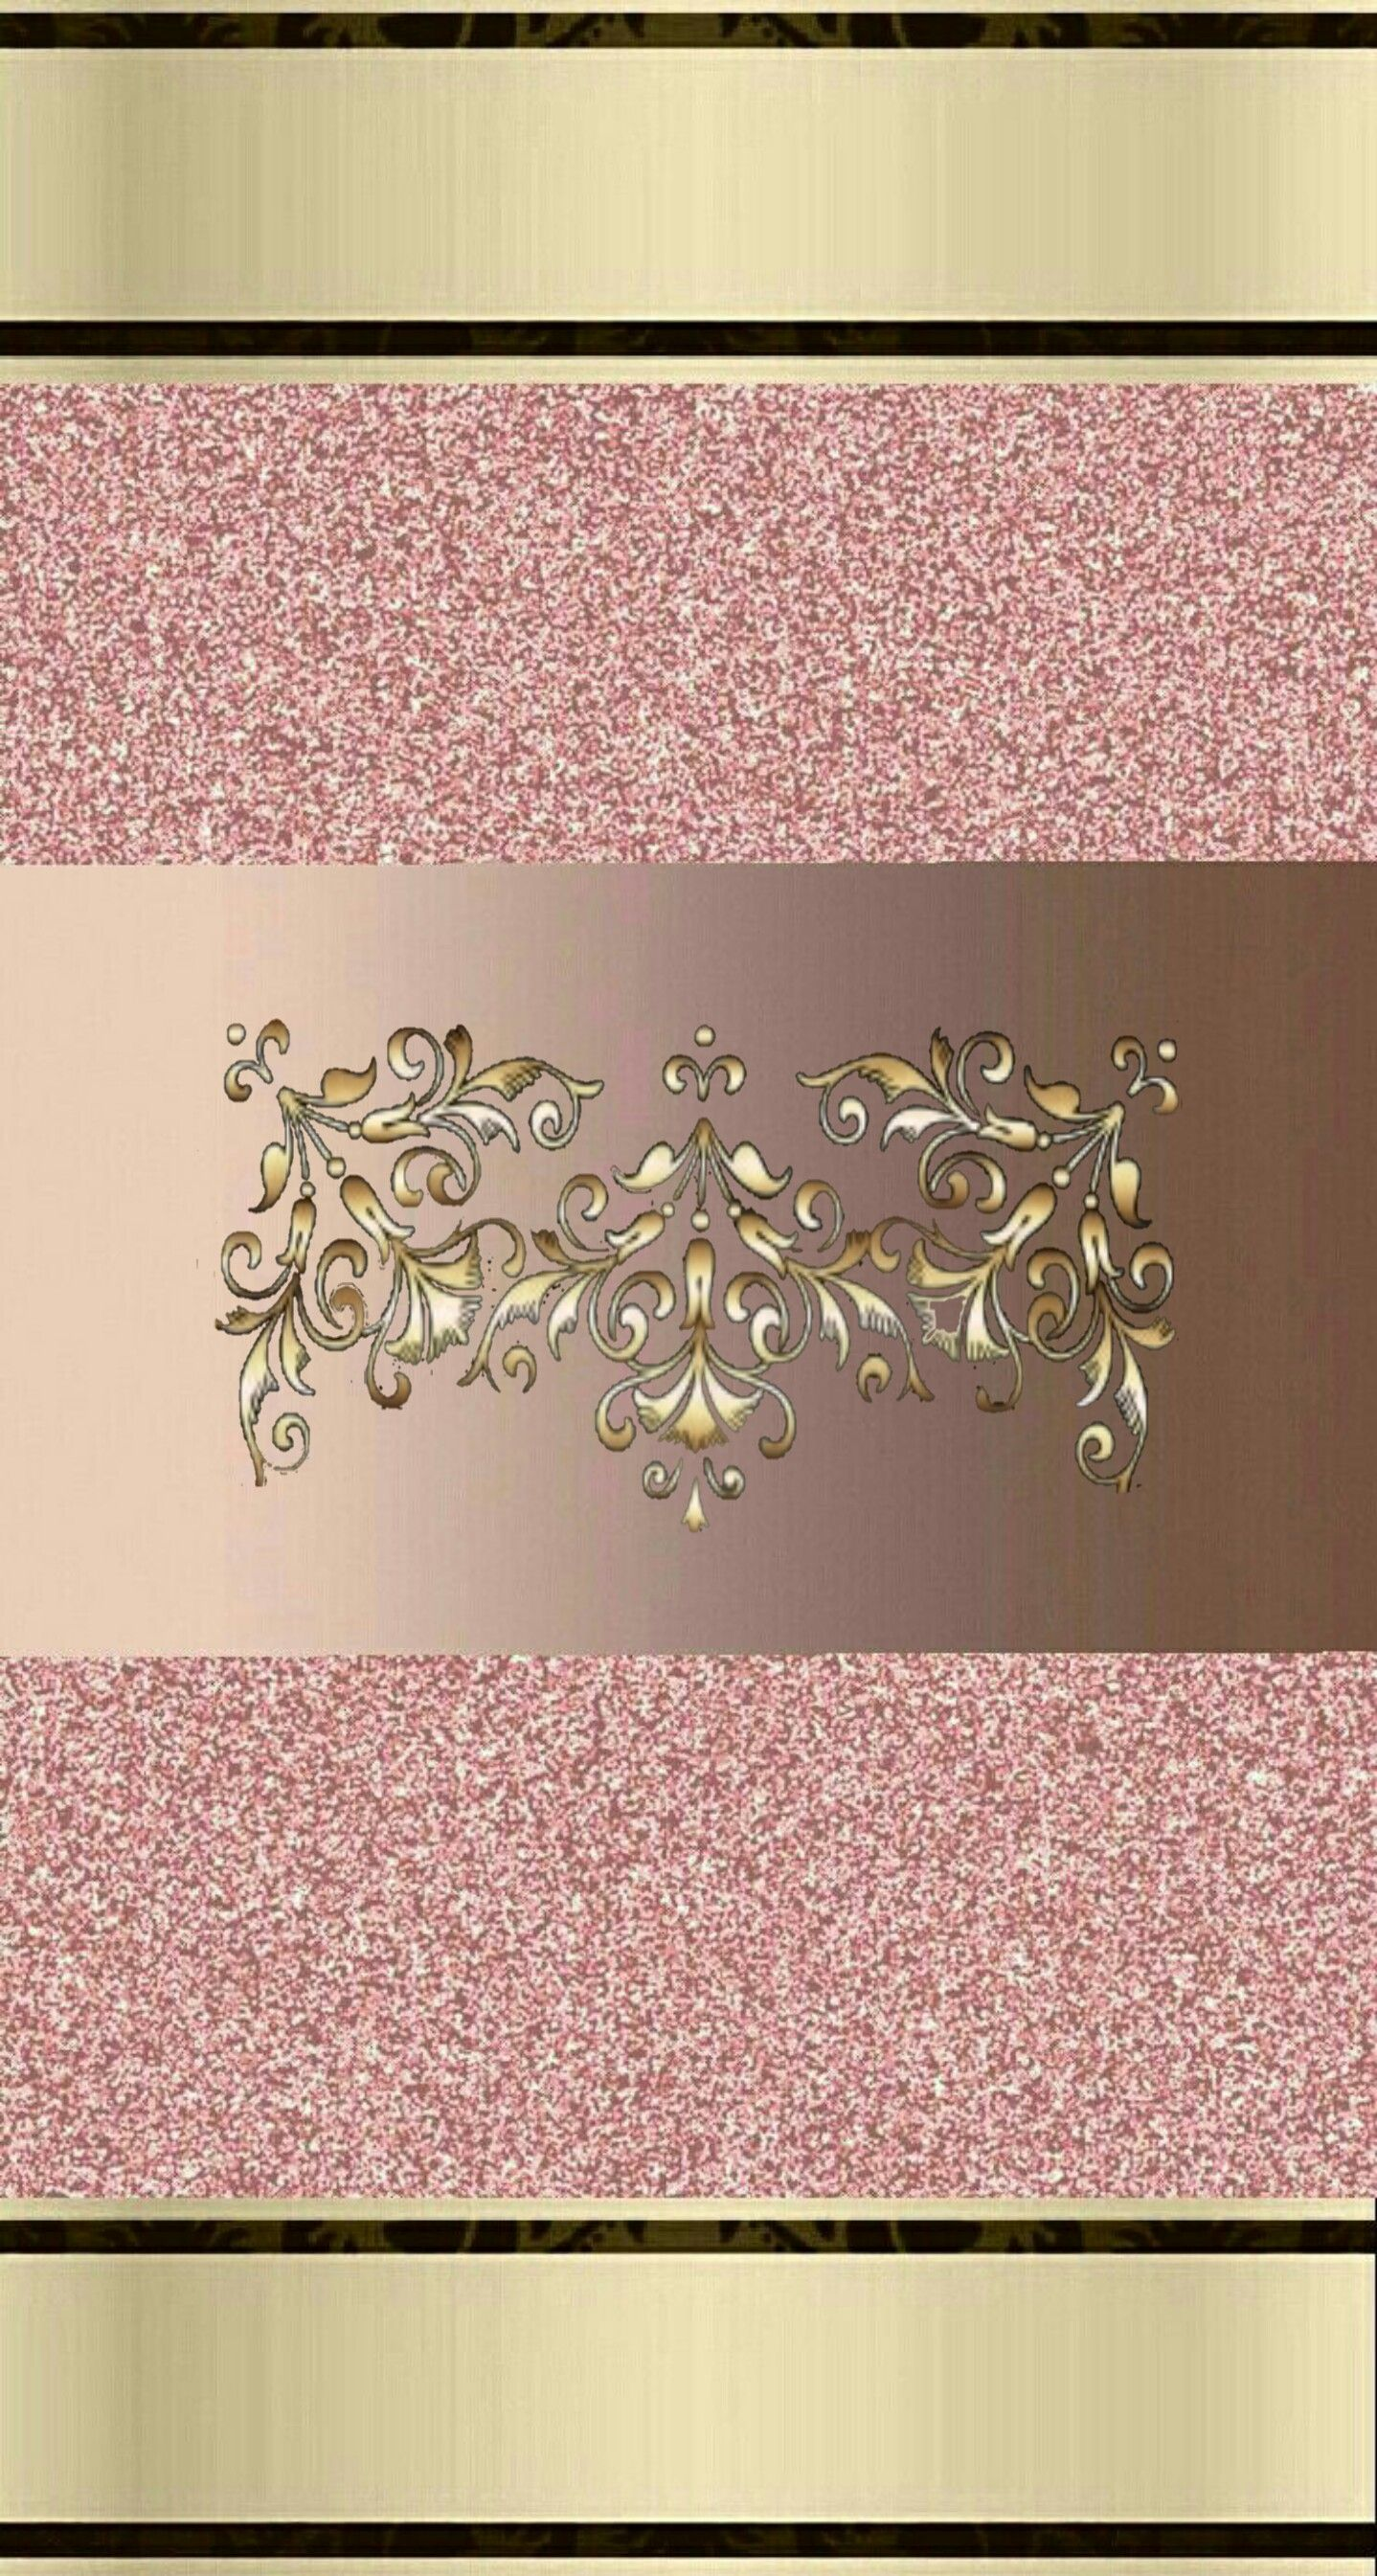 Pink Gold Wallpaper By Artist Unknown Background